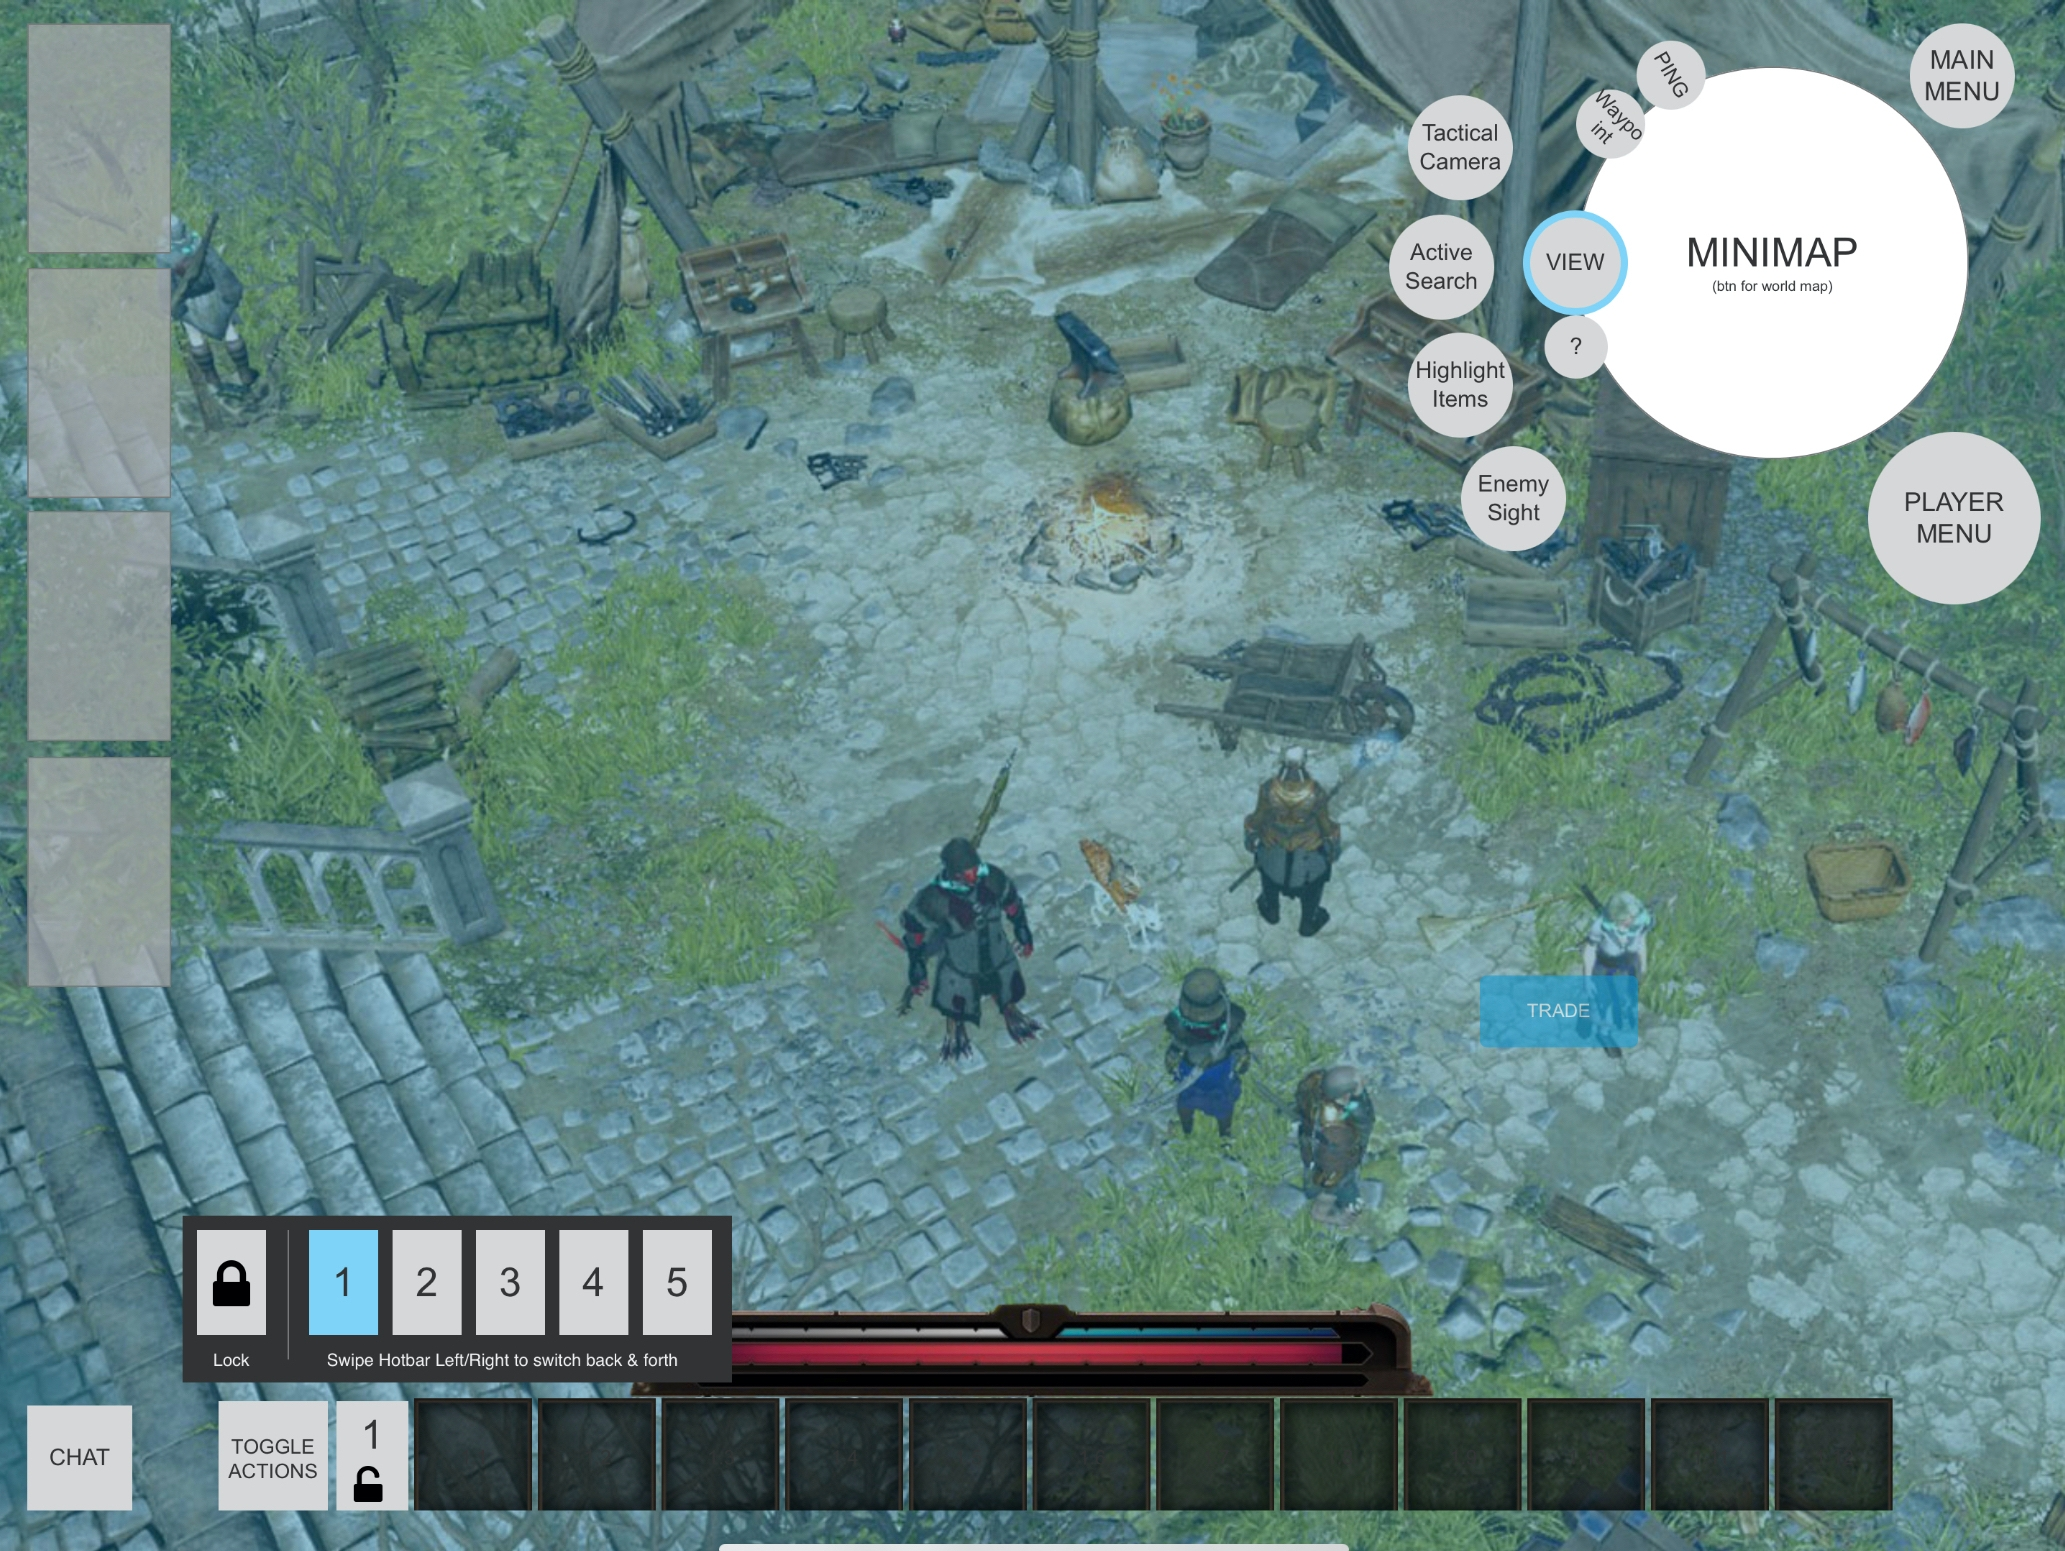 A screenshot with shapes blocked out for character portraits on the left side of the screen, a minimap in the upper right corner, and a quick access bar along the bottom.